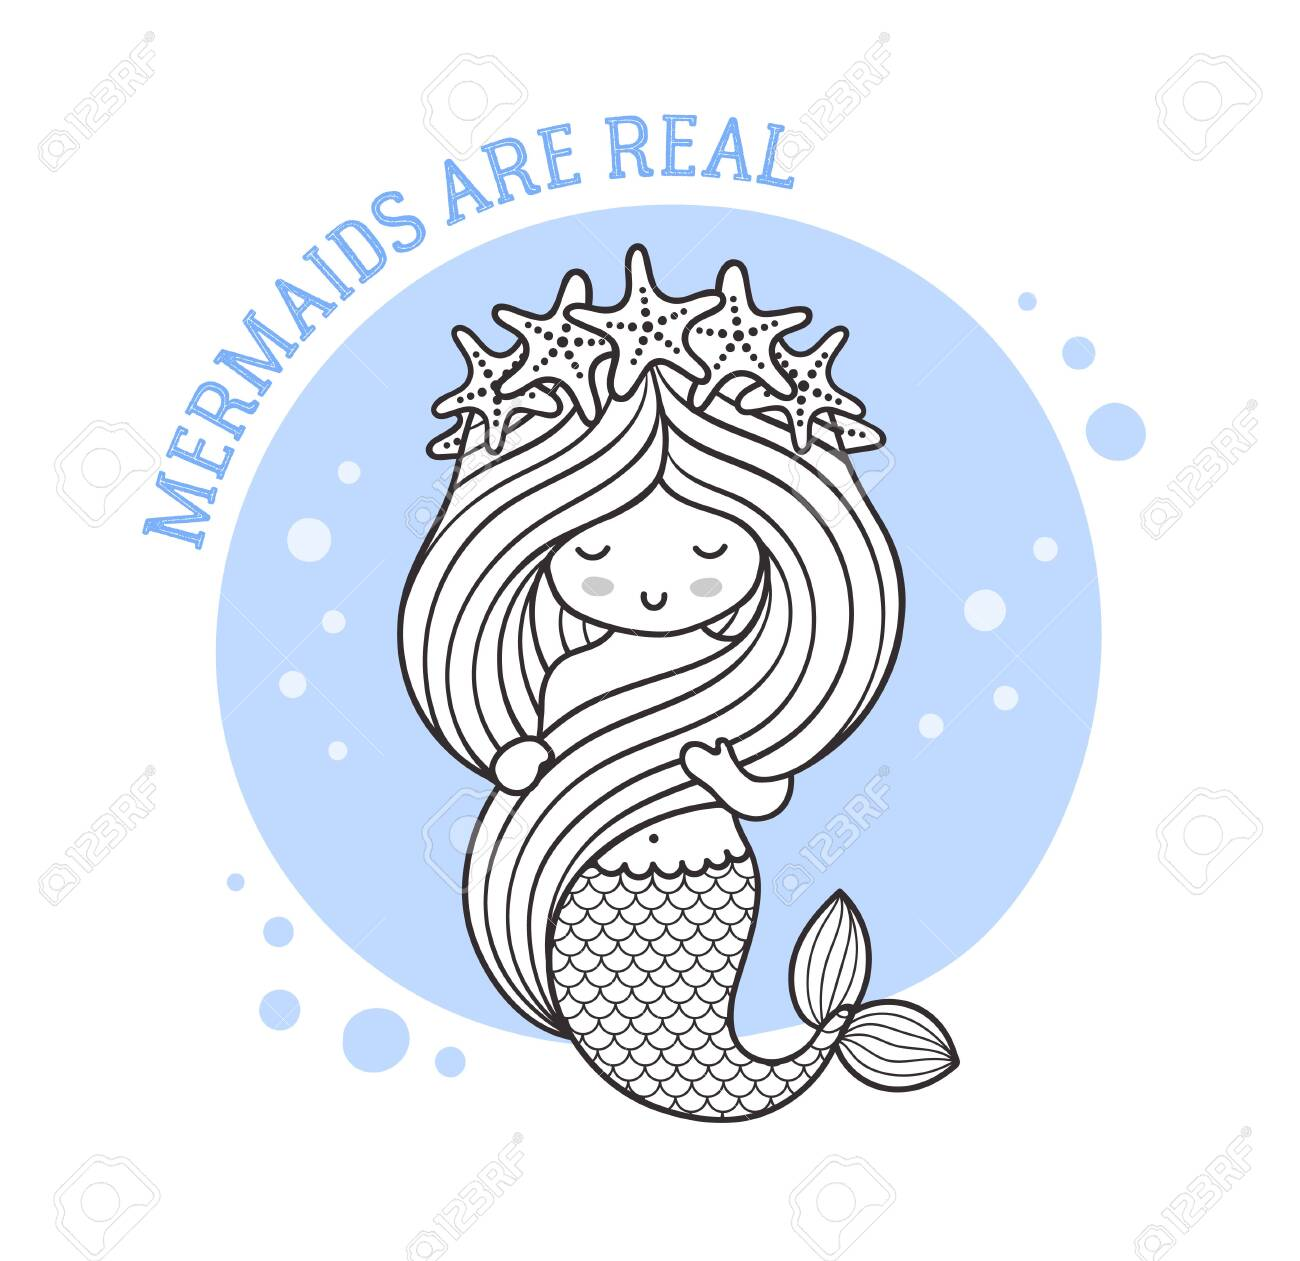 Little mermaid in a wreath of starfish. Mermaids are real quote...